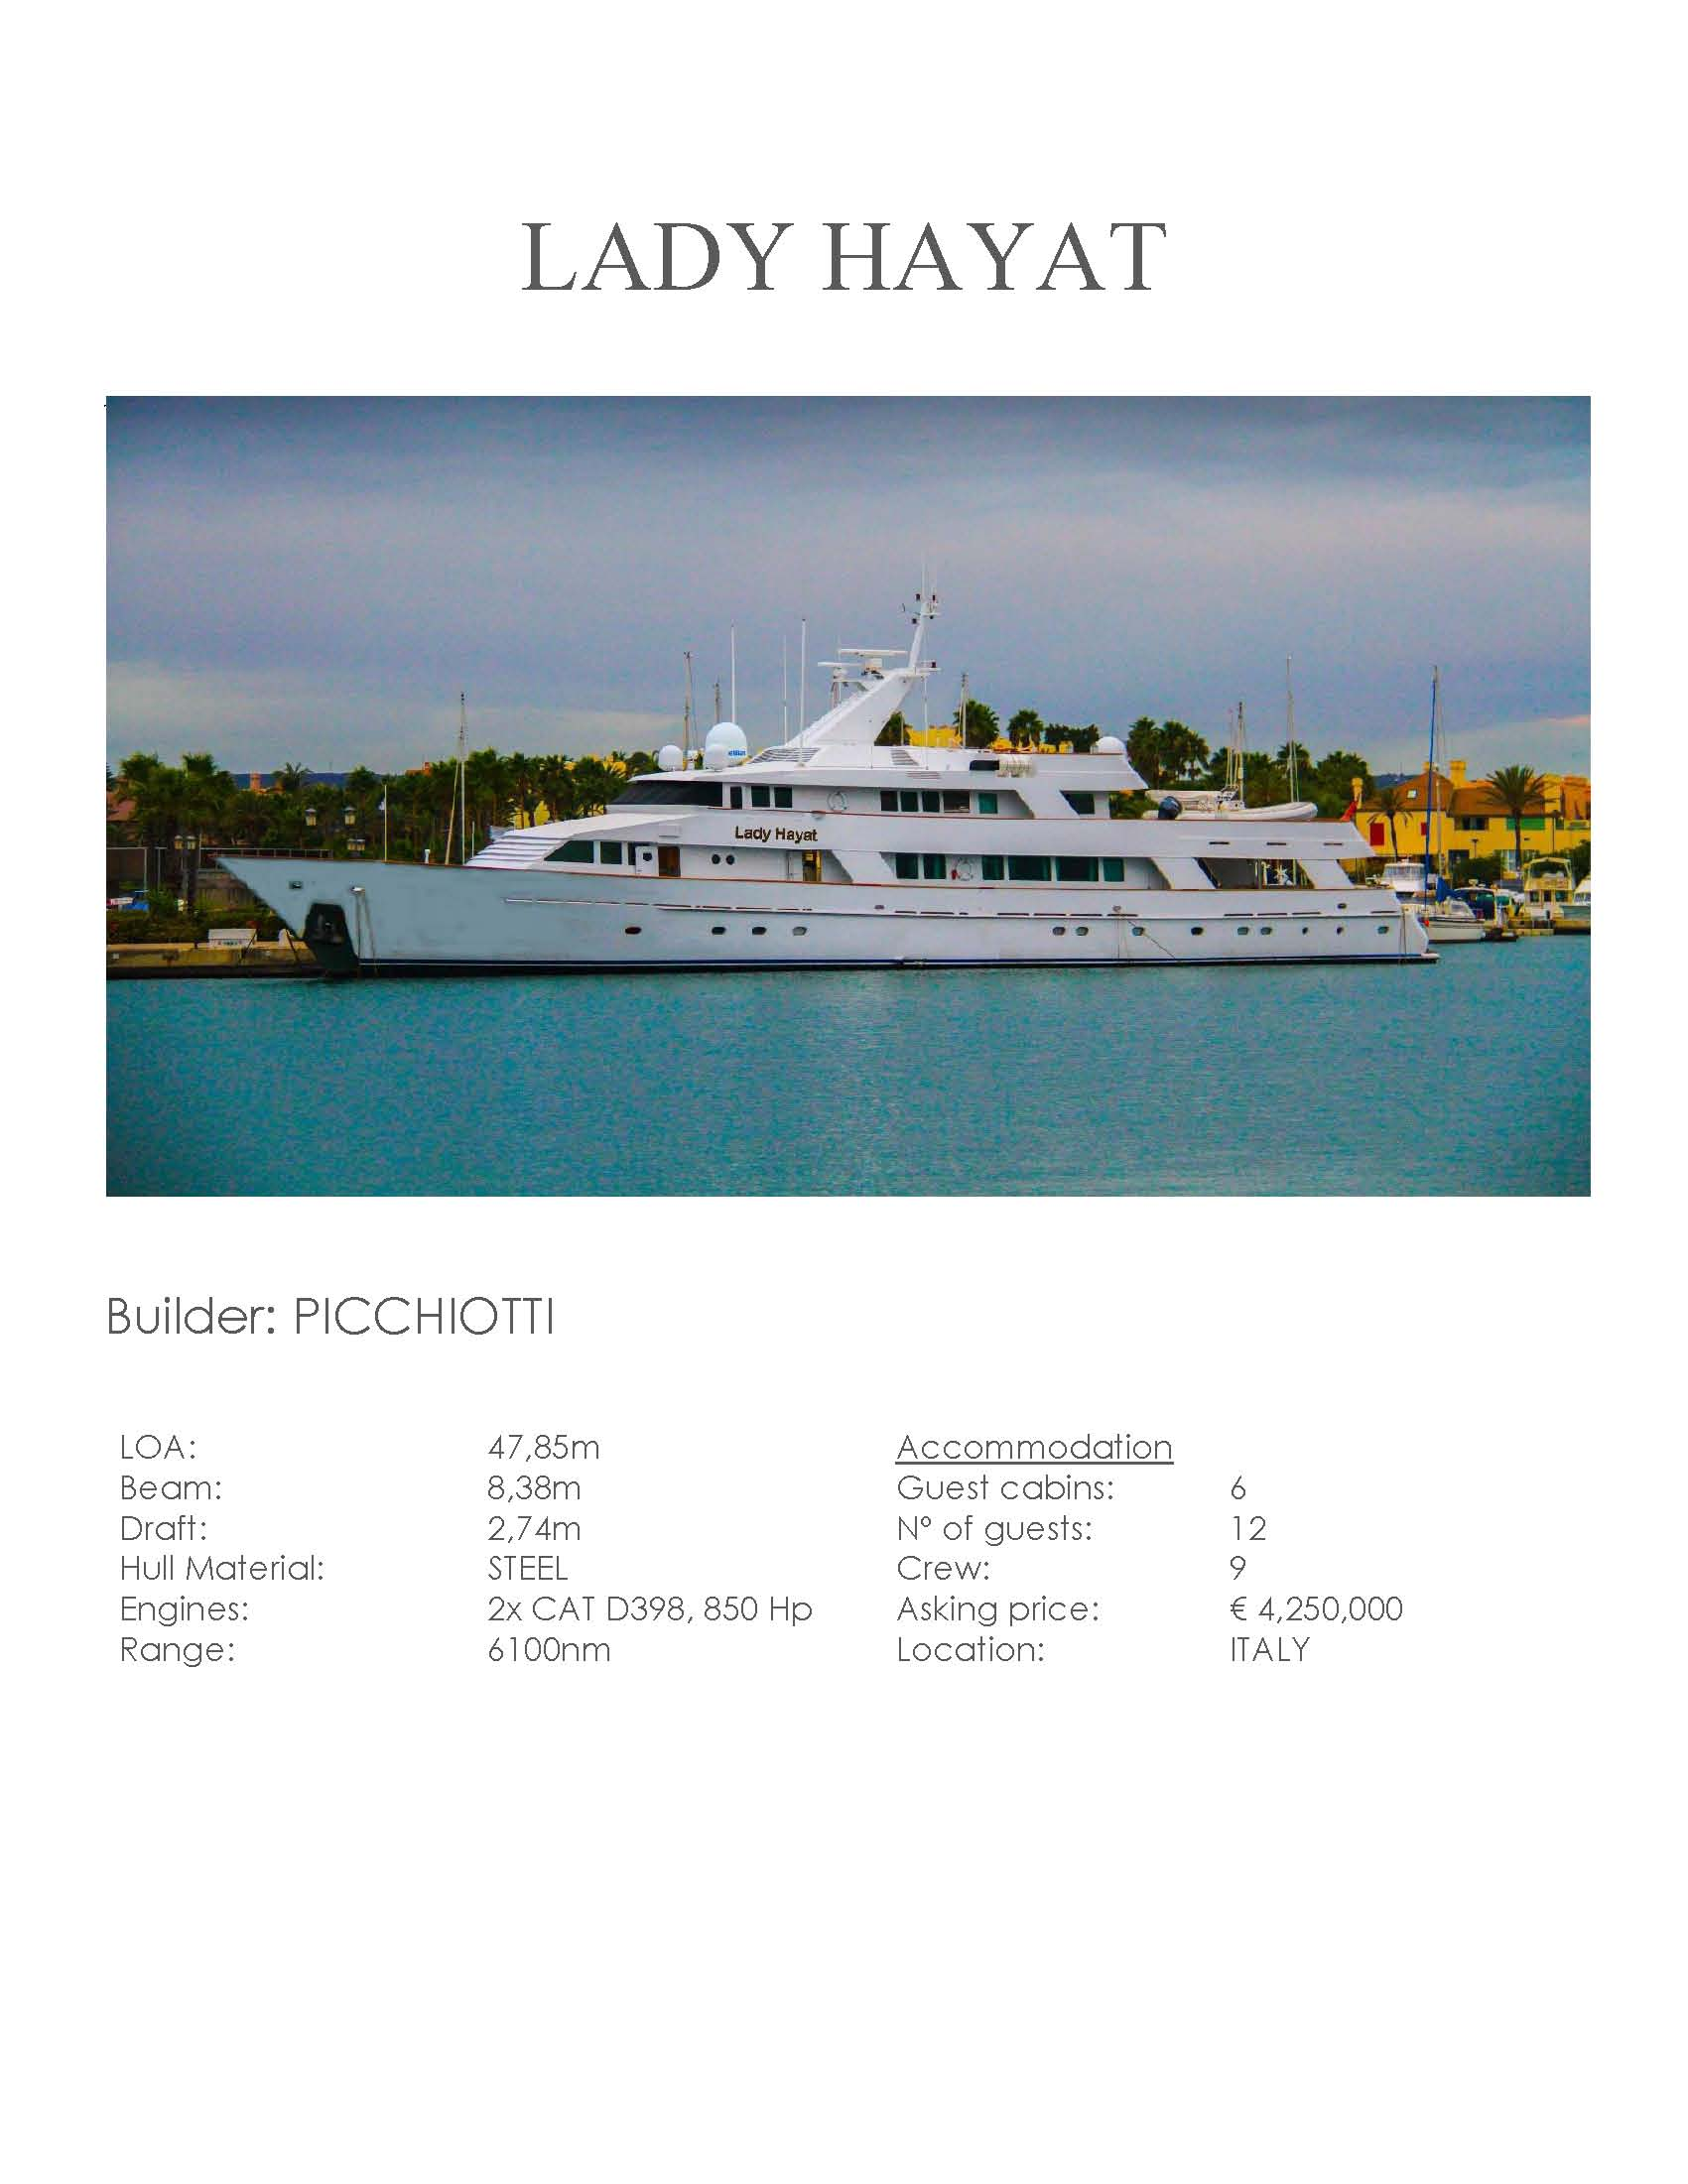 LADY HAYAT for sale 2019 Specifications Pagina 01.jpg